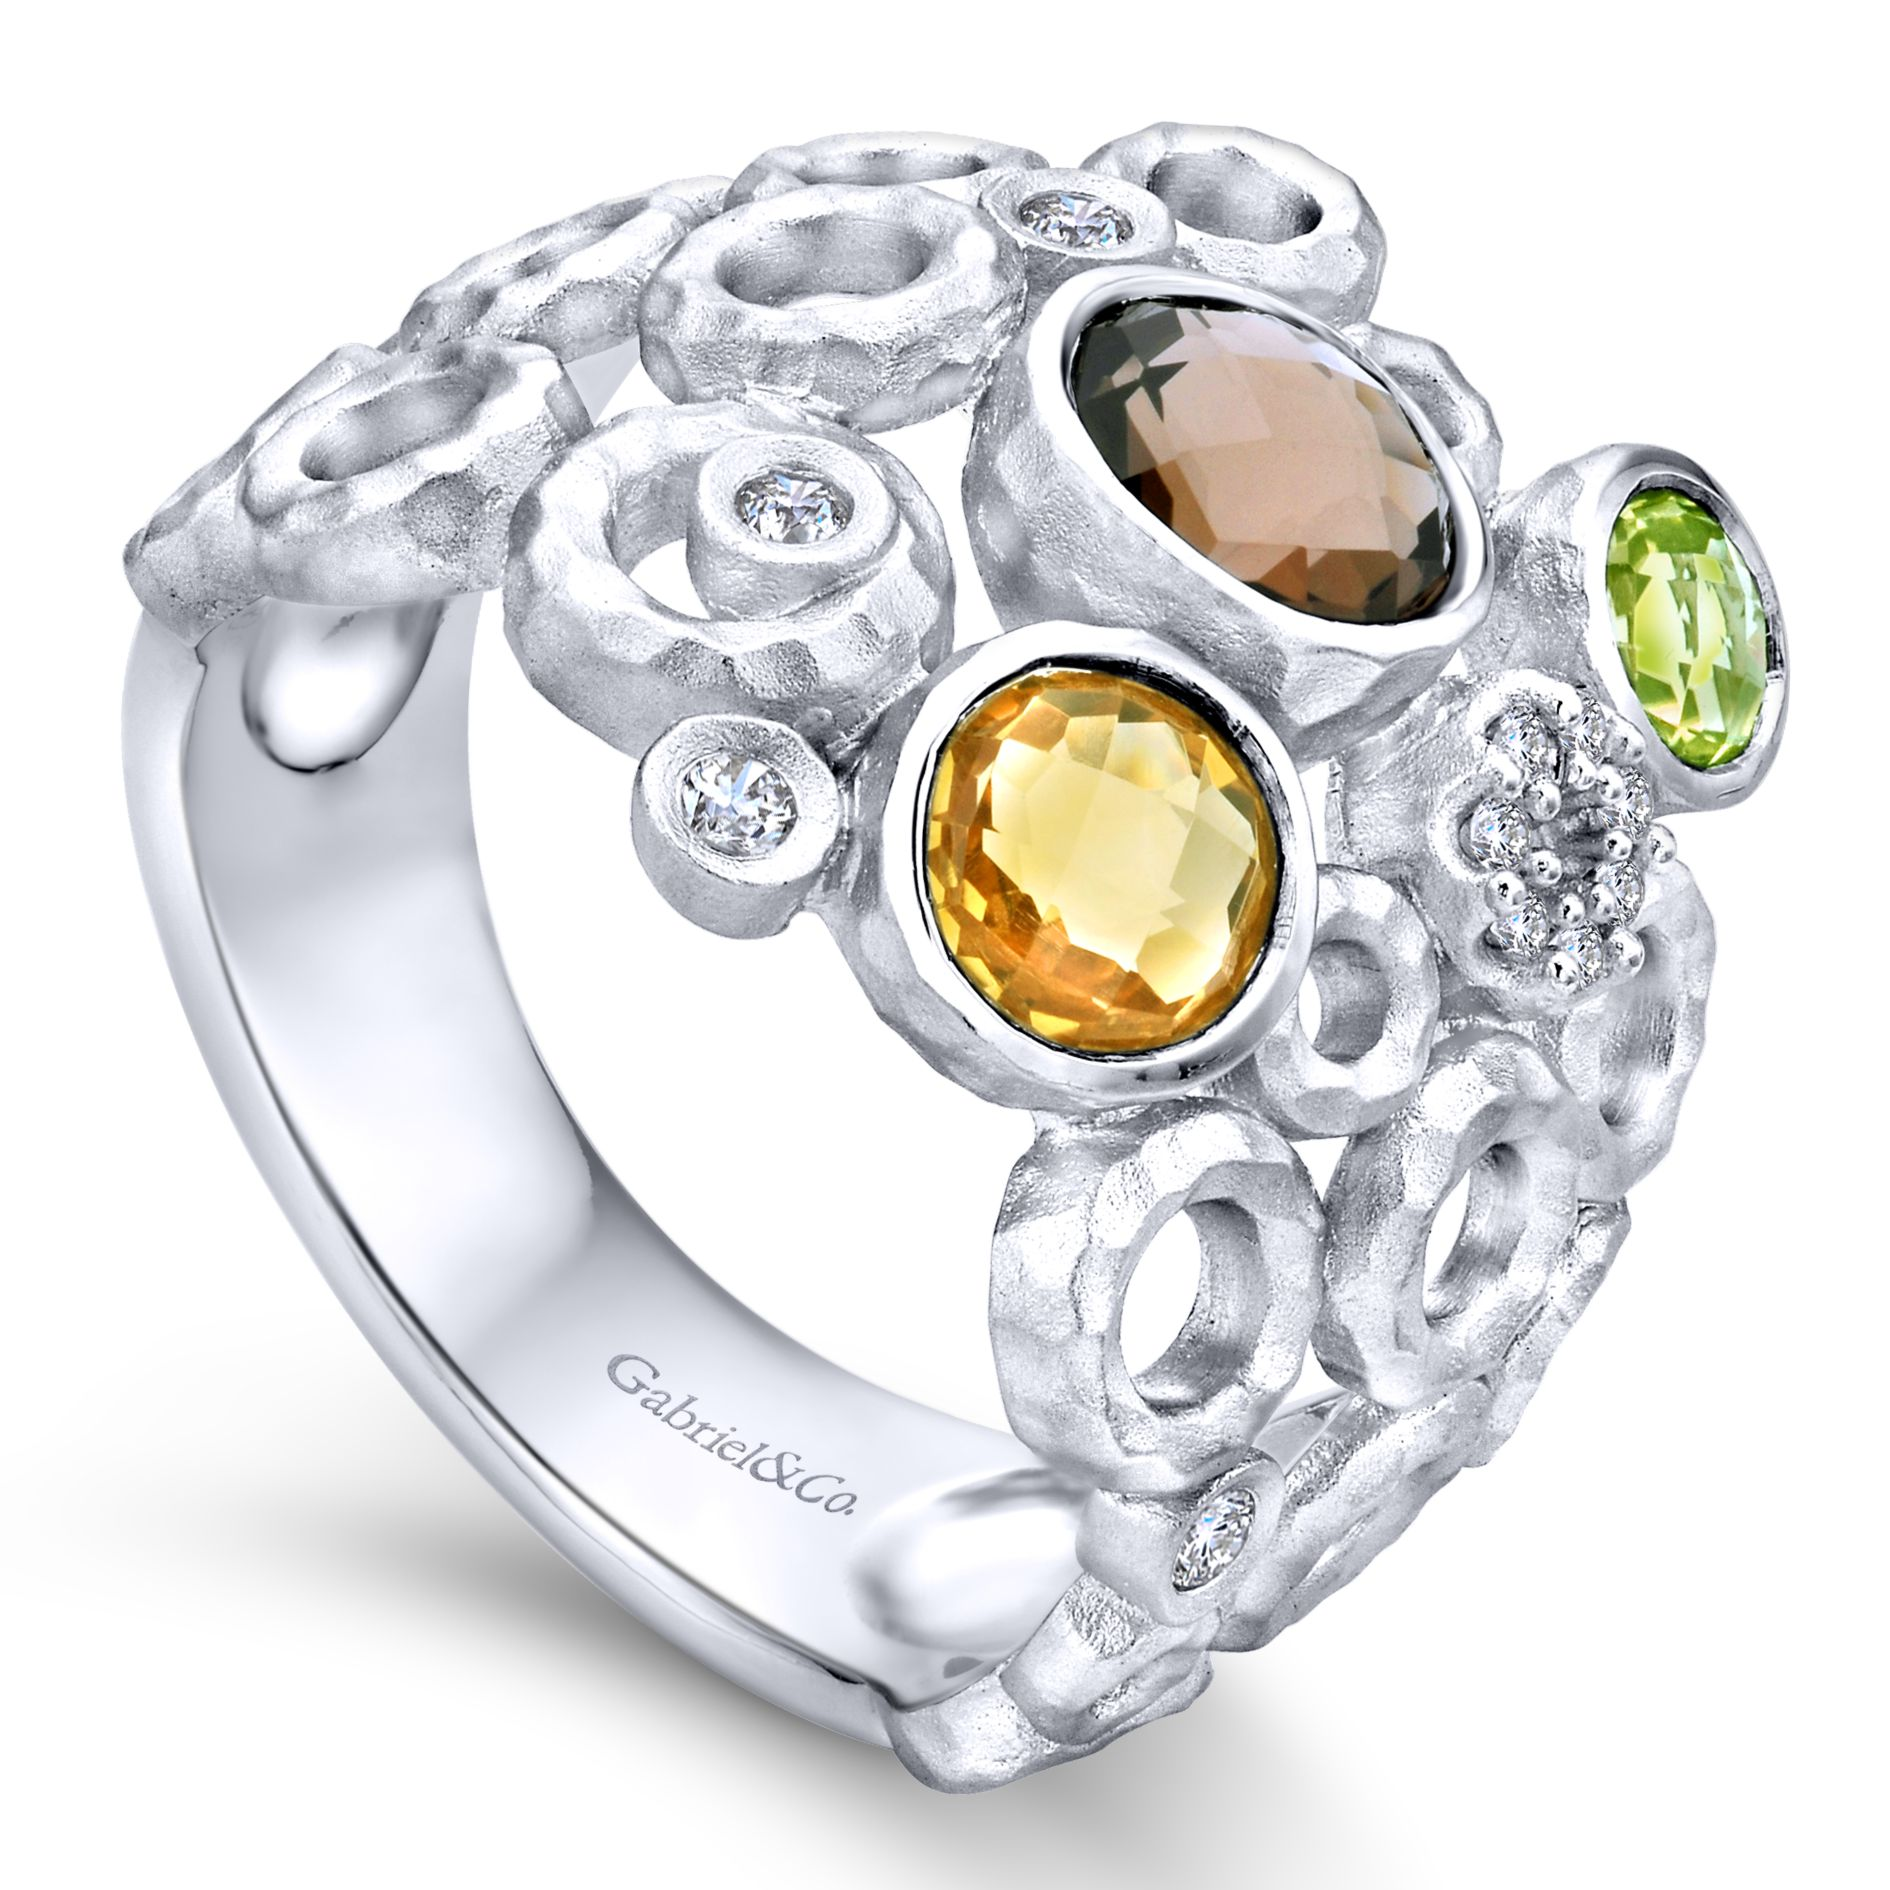 Rings - SILVER WIDE BAND MULTI COLOR STONE LADIES RING - image 3